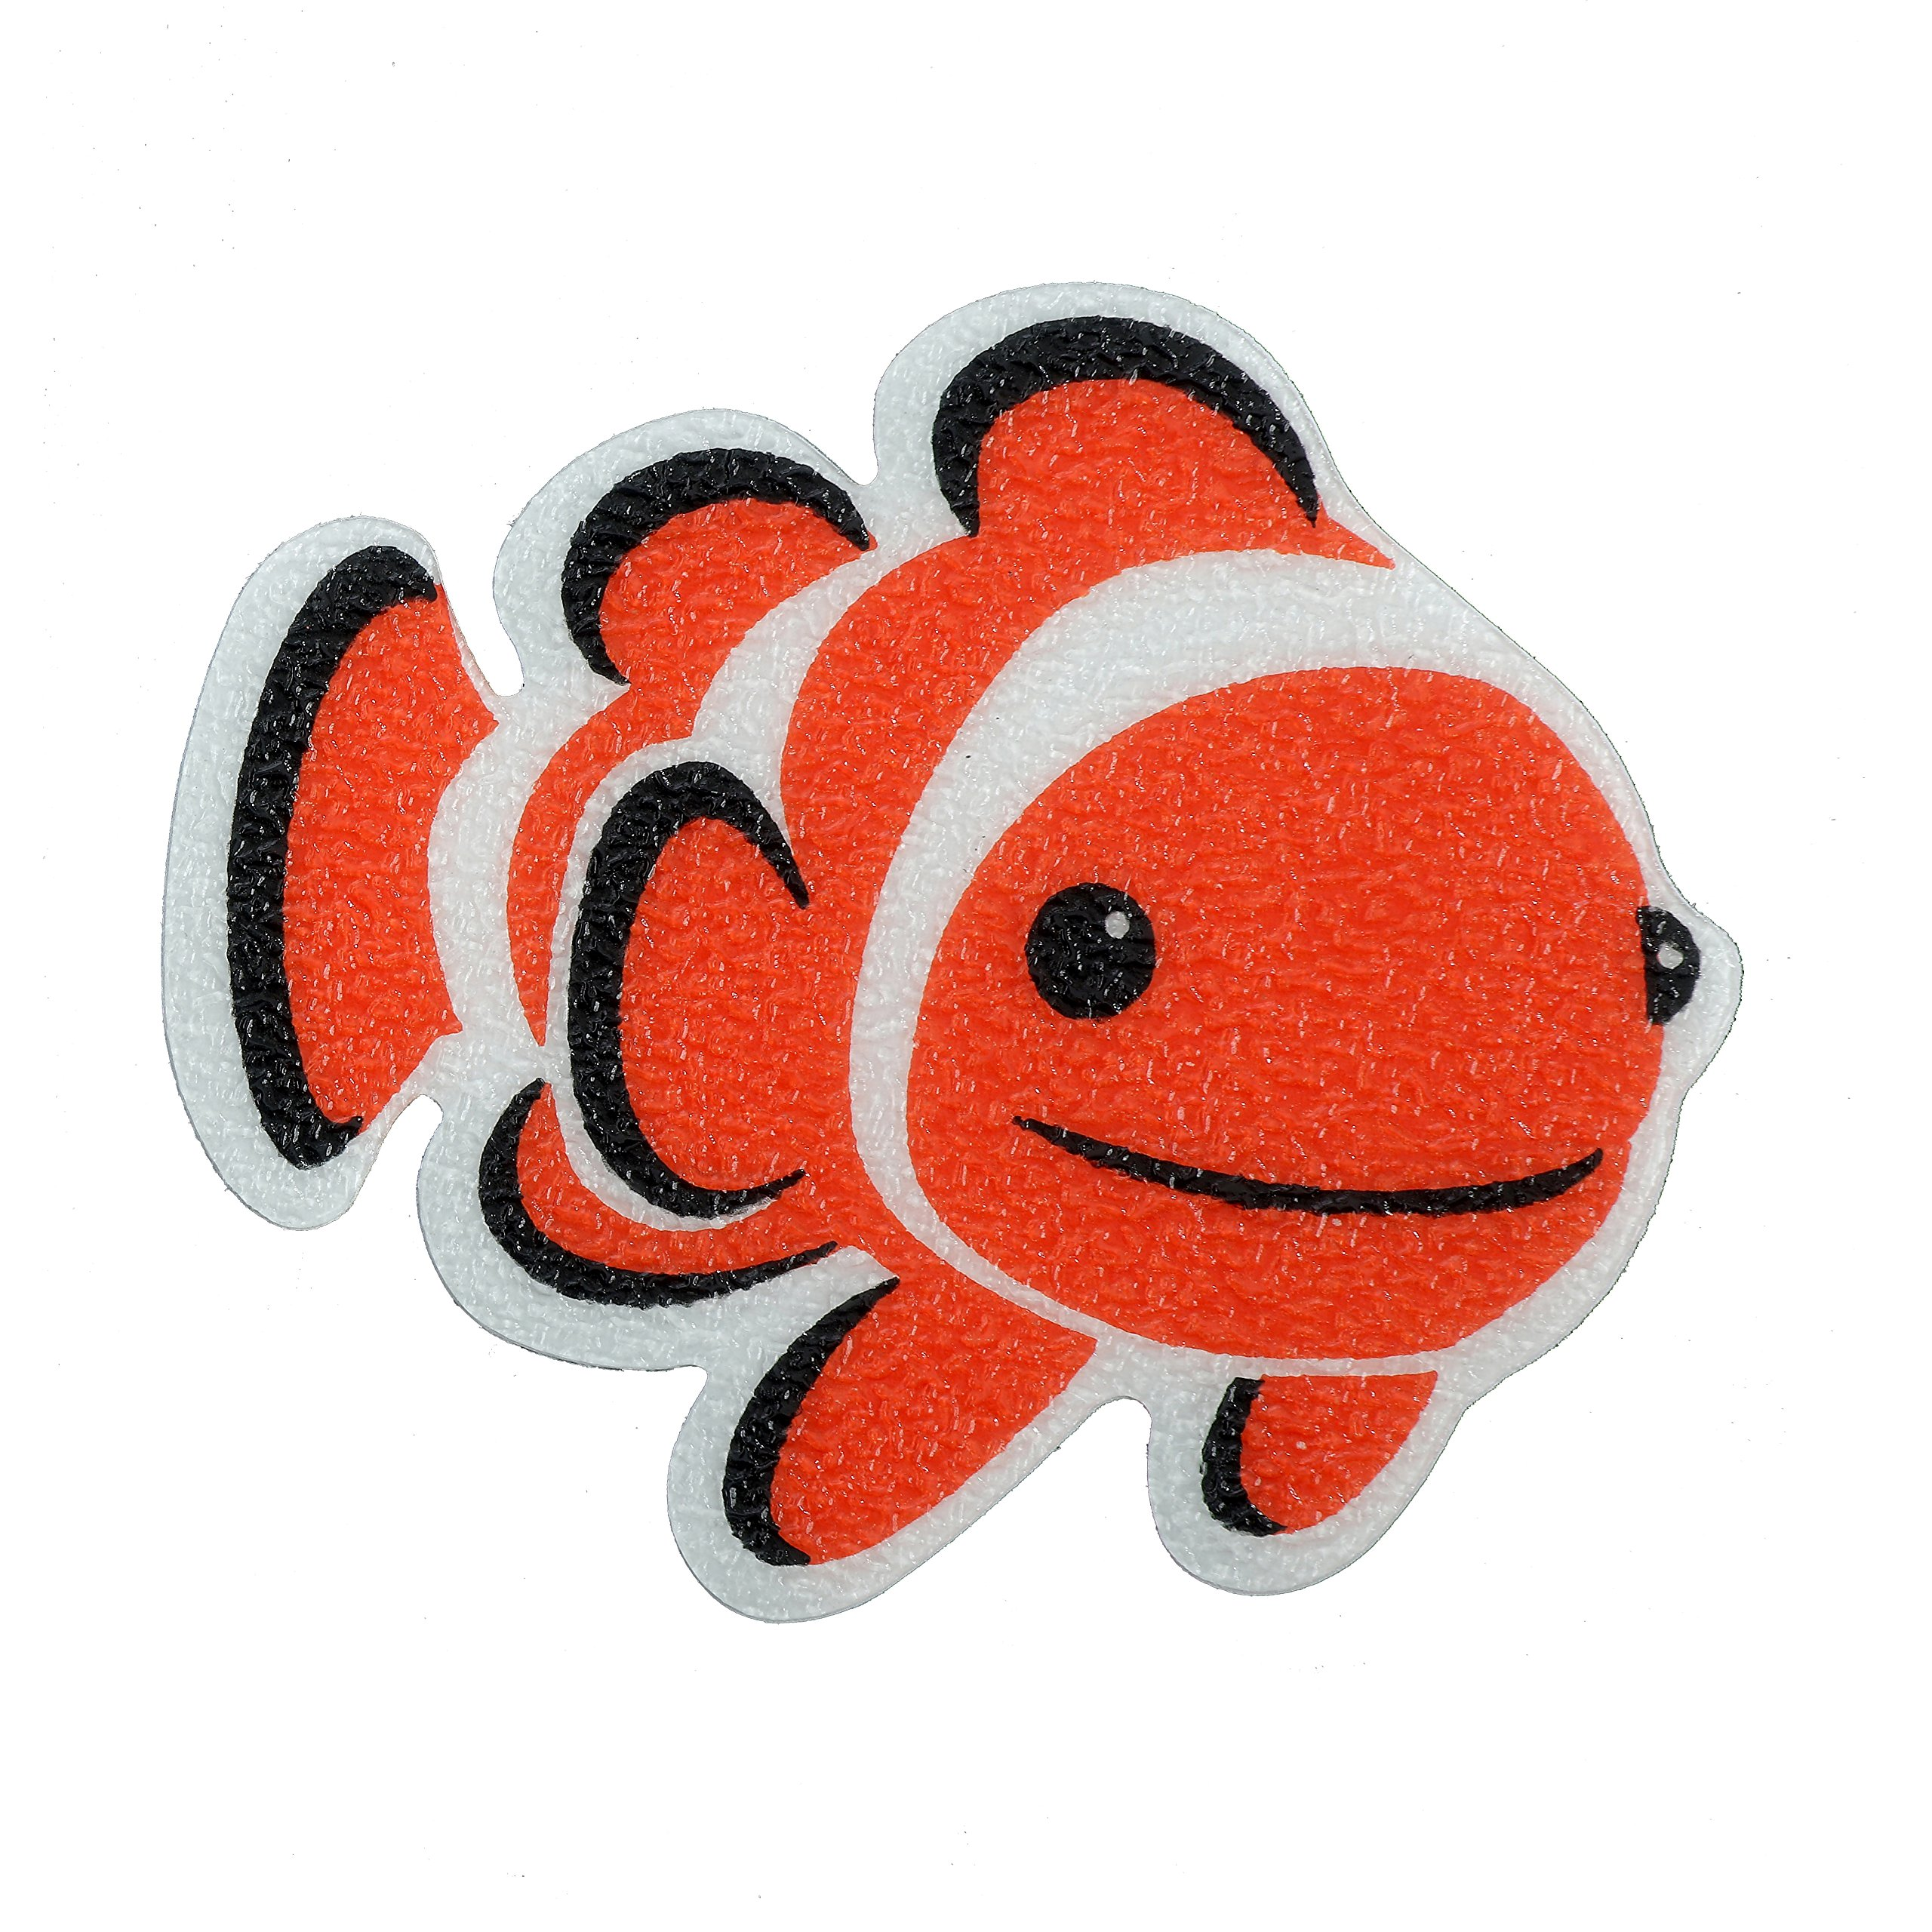 SlipX Solutions Adhesive Bath Treads: Clownfish Tub Tattoos Add Non Slip  Traction To Tubs